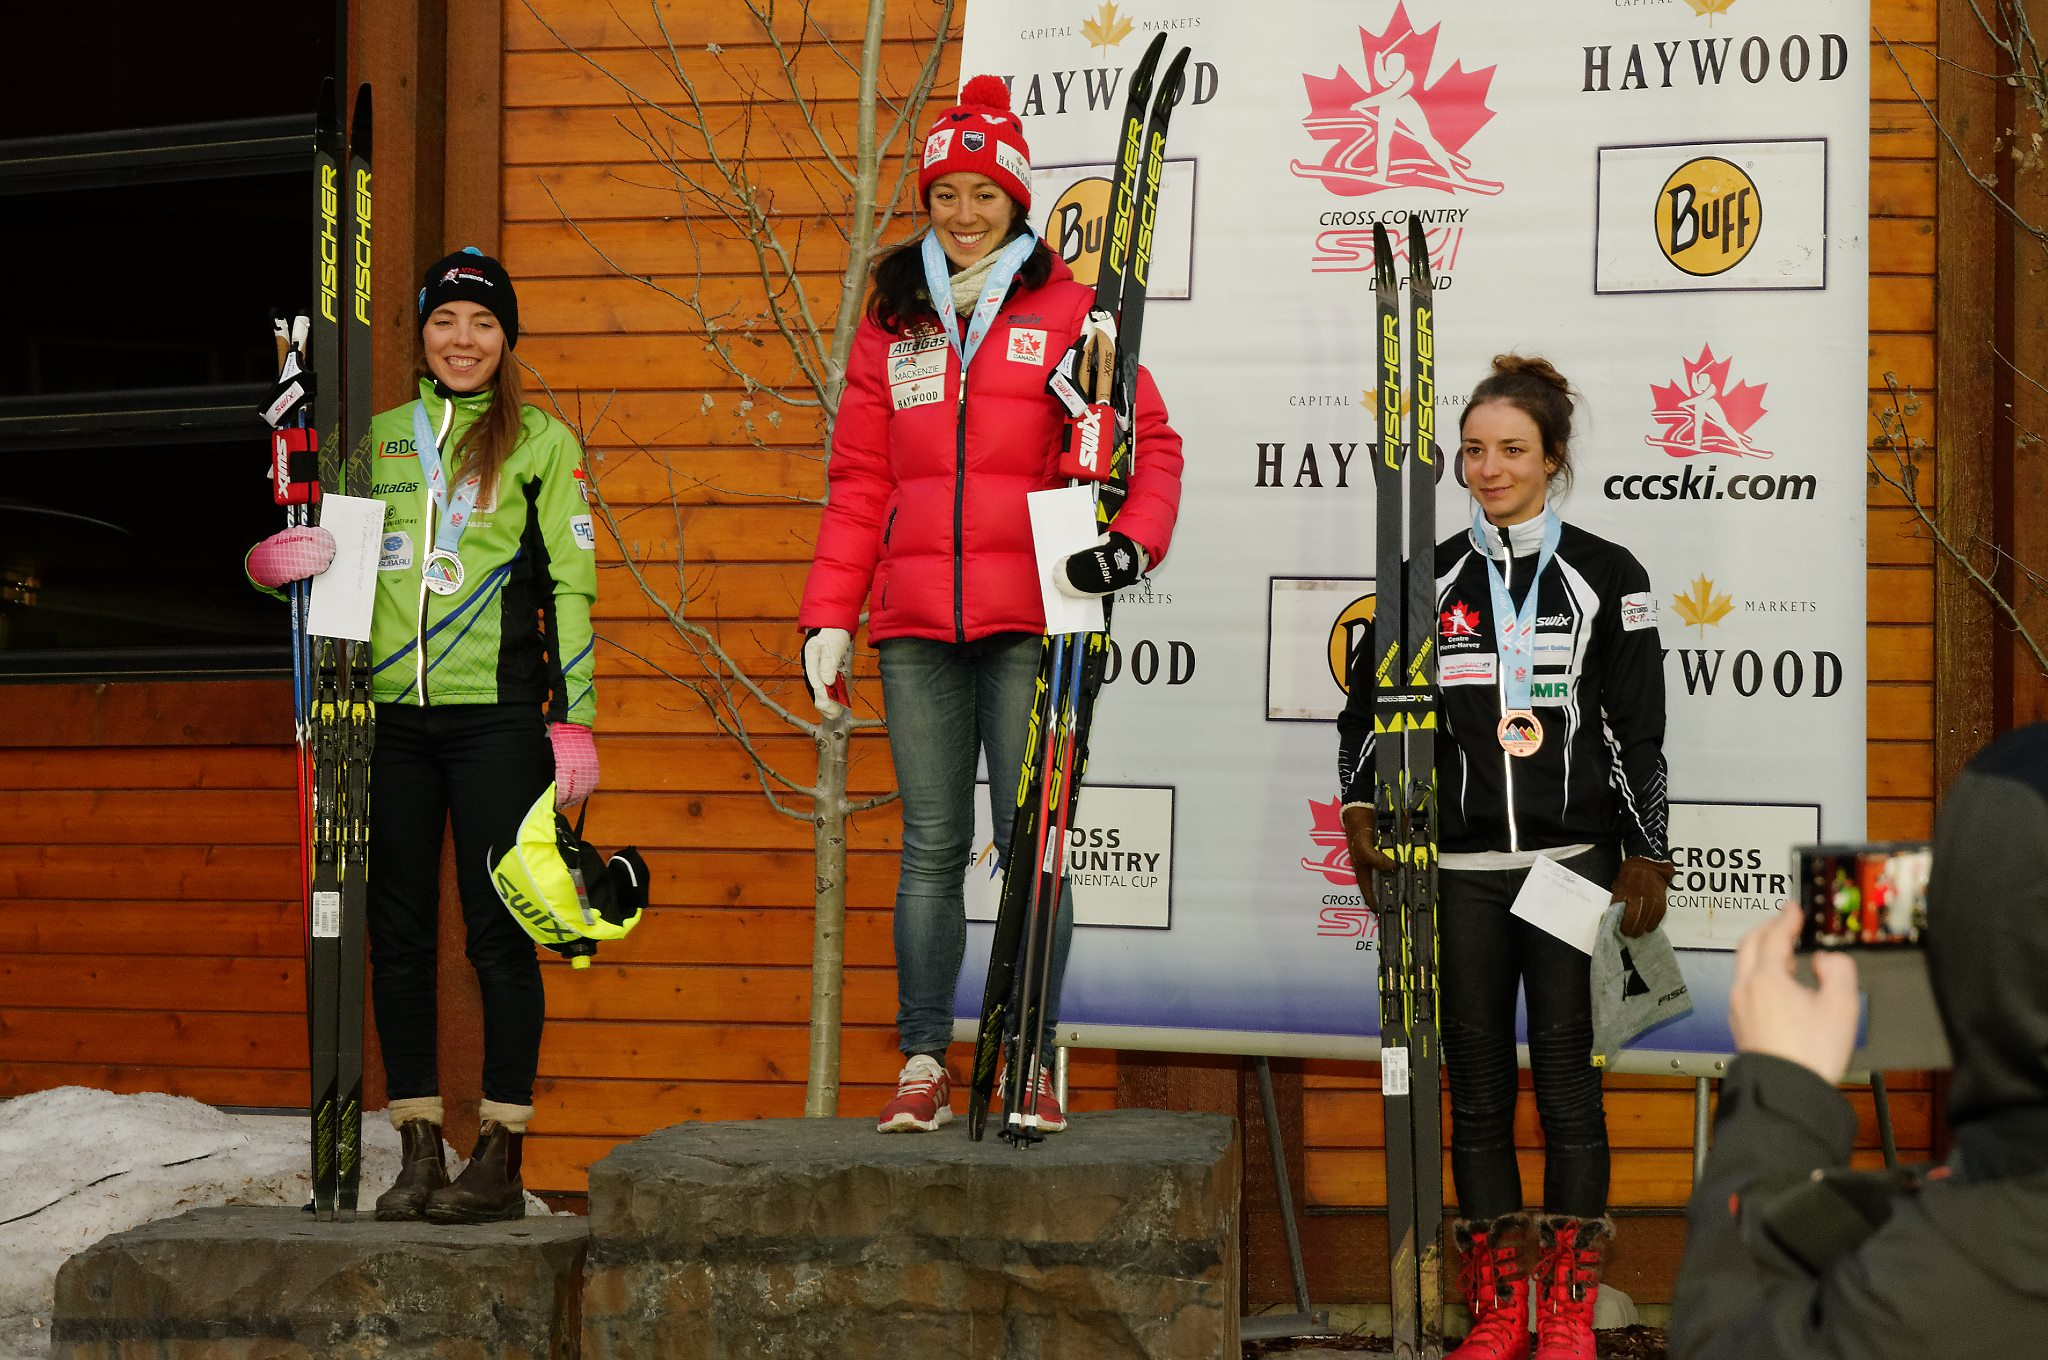 Podium from the 10km Classic race. Katherine Stewart-Jones, me, Fred Vezina l-r